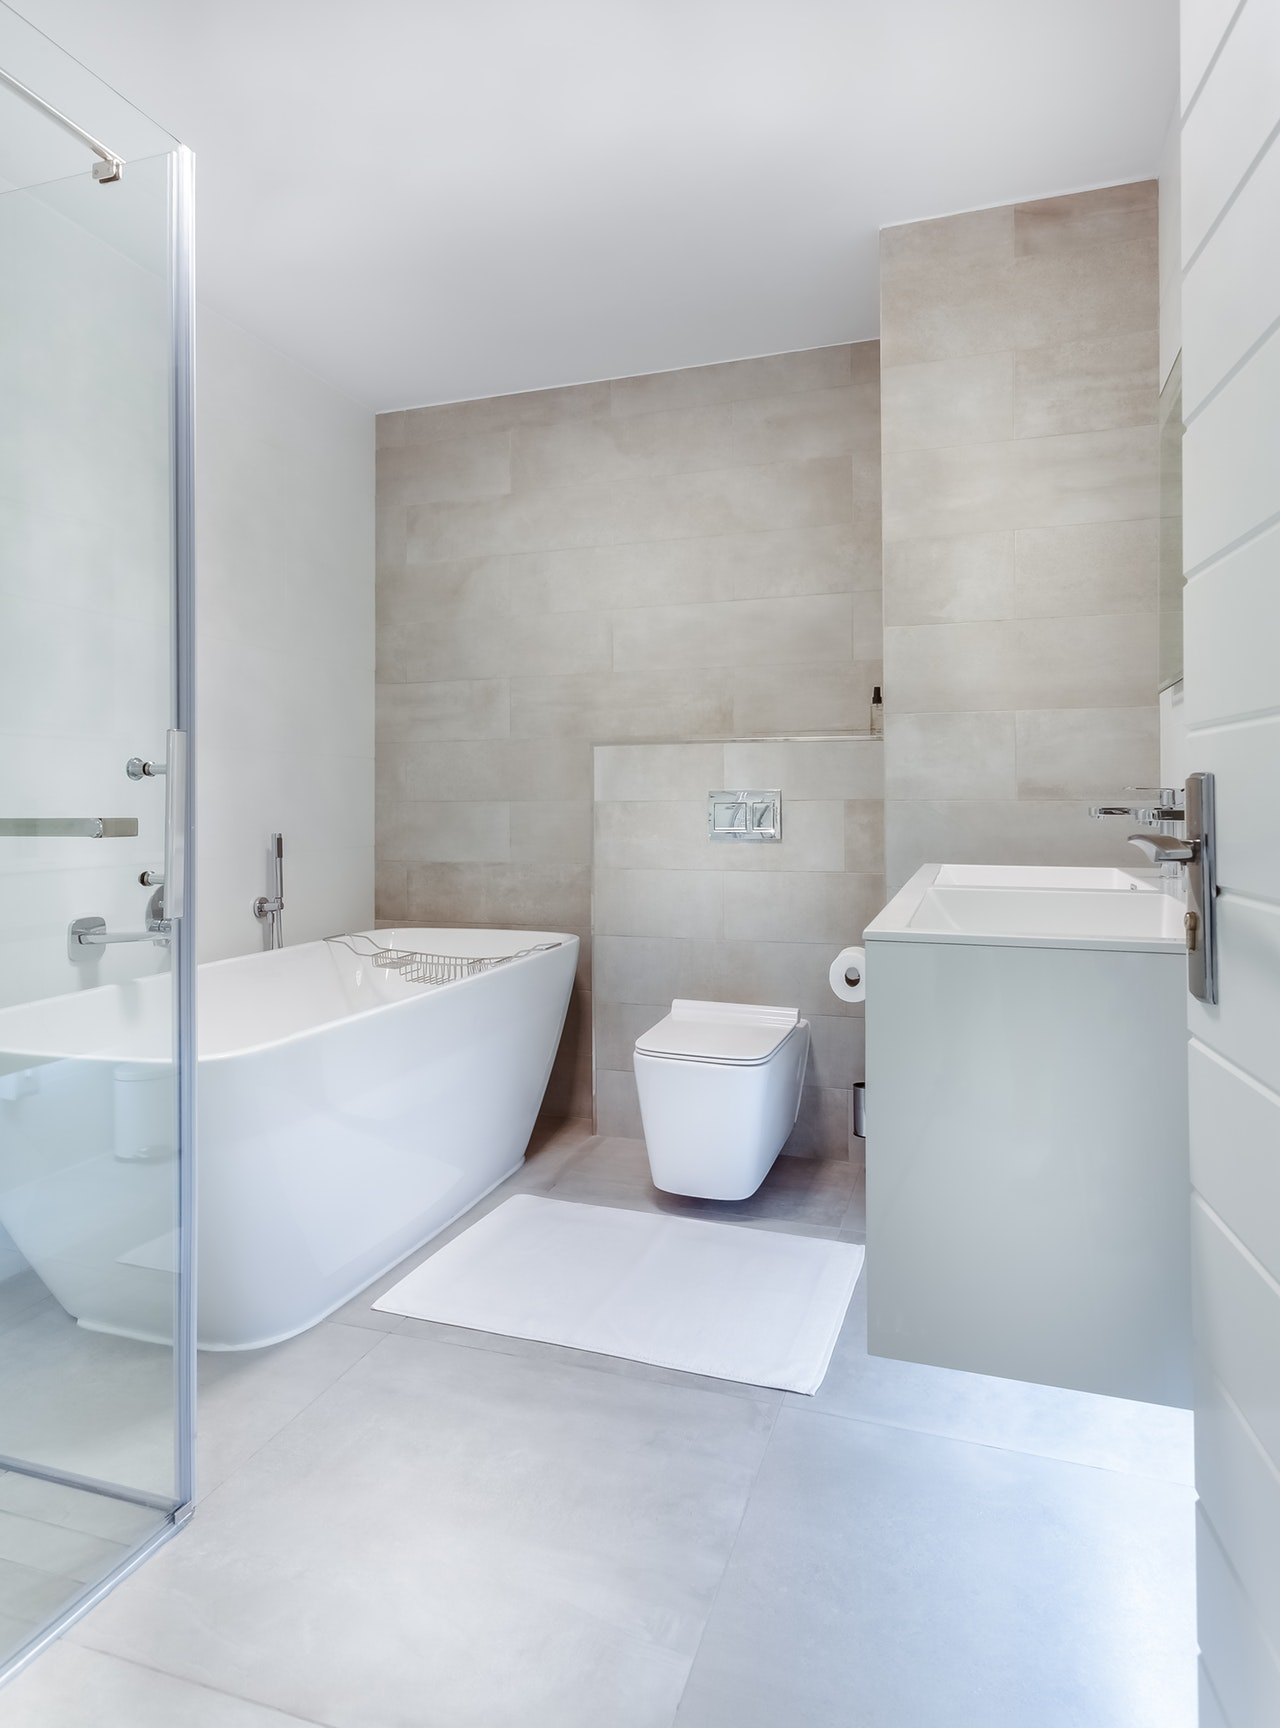 Smart Bathrooms Guide Article Image